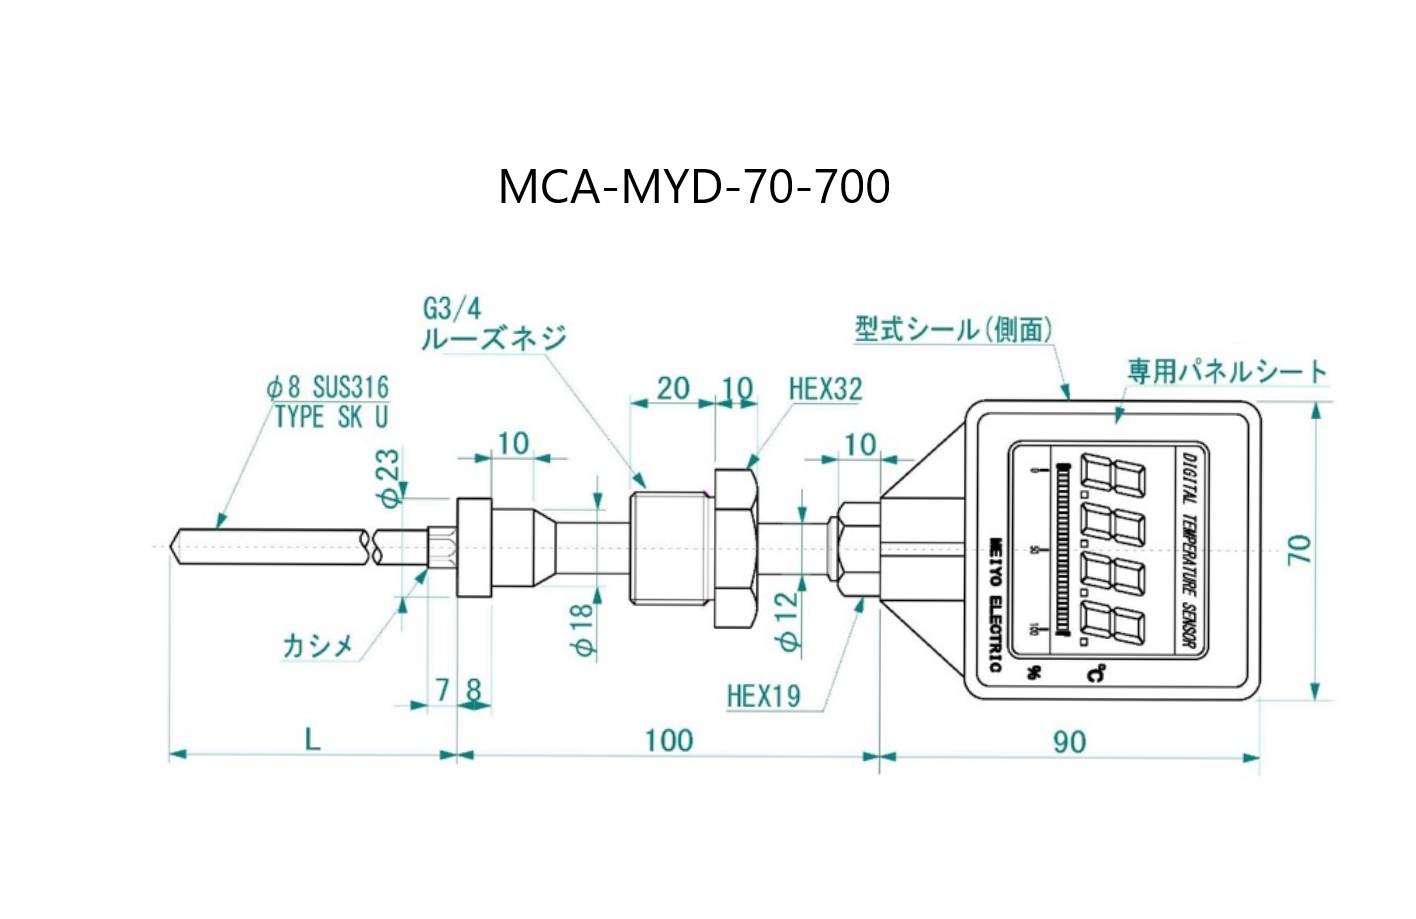 Digital Thermometer MCA-MYD-70-700 / 42-700 Outline drawing